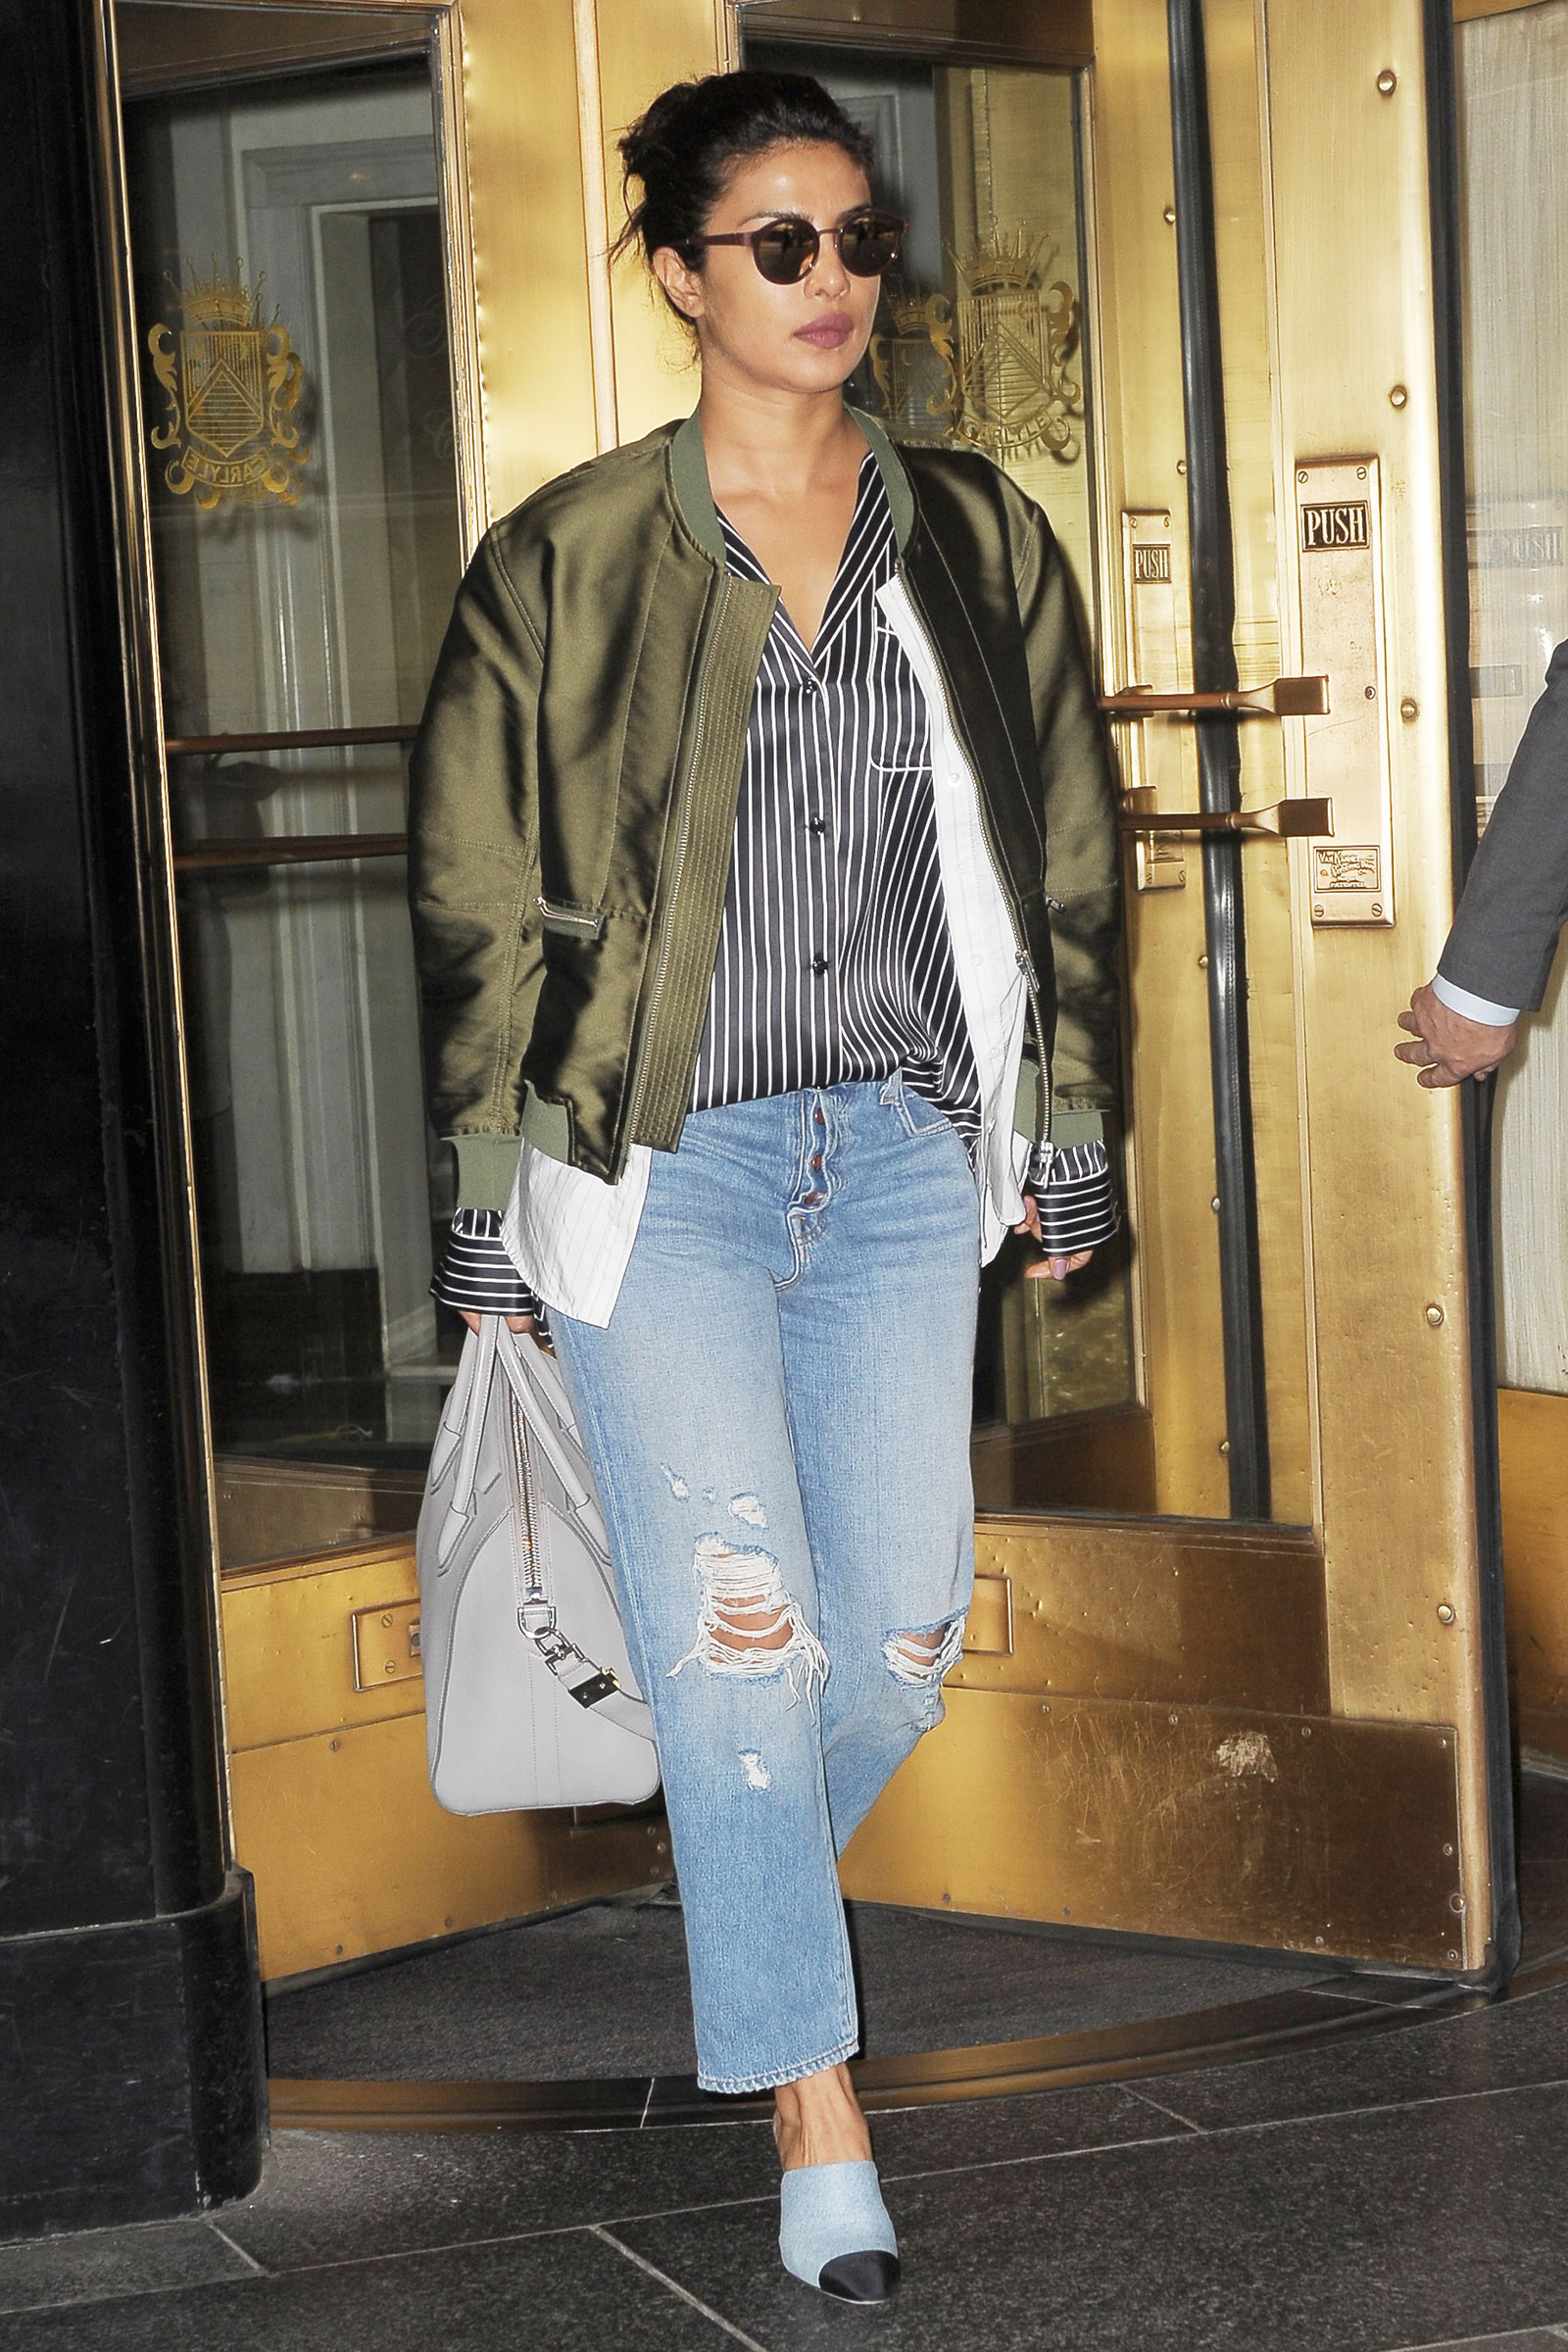 Priyanka Chopra looks chic in an olive bomber jacket, stripe blouse and crop high waist denim.